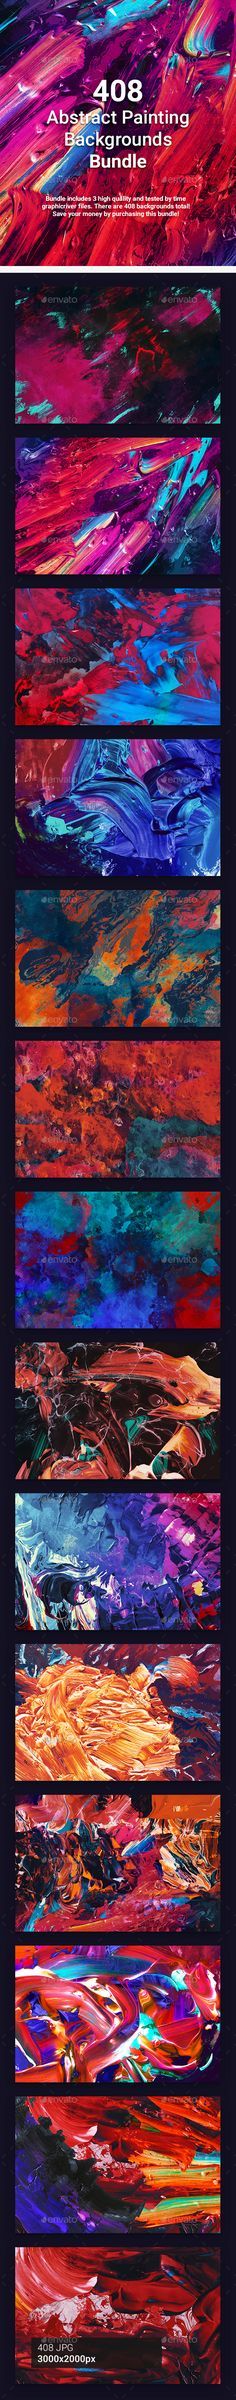 408 Abstract Painting Backgrounds Bundle by kauster- 408 Abstract Painting Backgrounds Bundle Bundle includes 3 high quality and tested by time graphicriver files. There are 408 backg